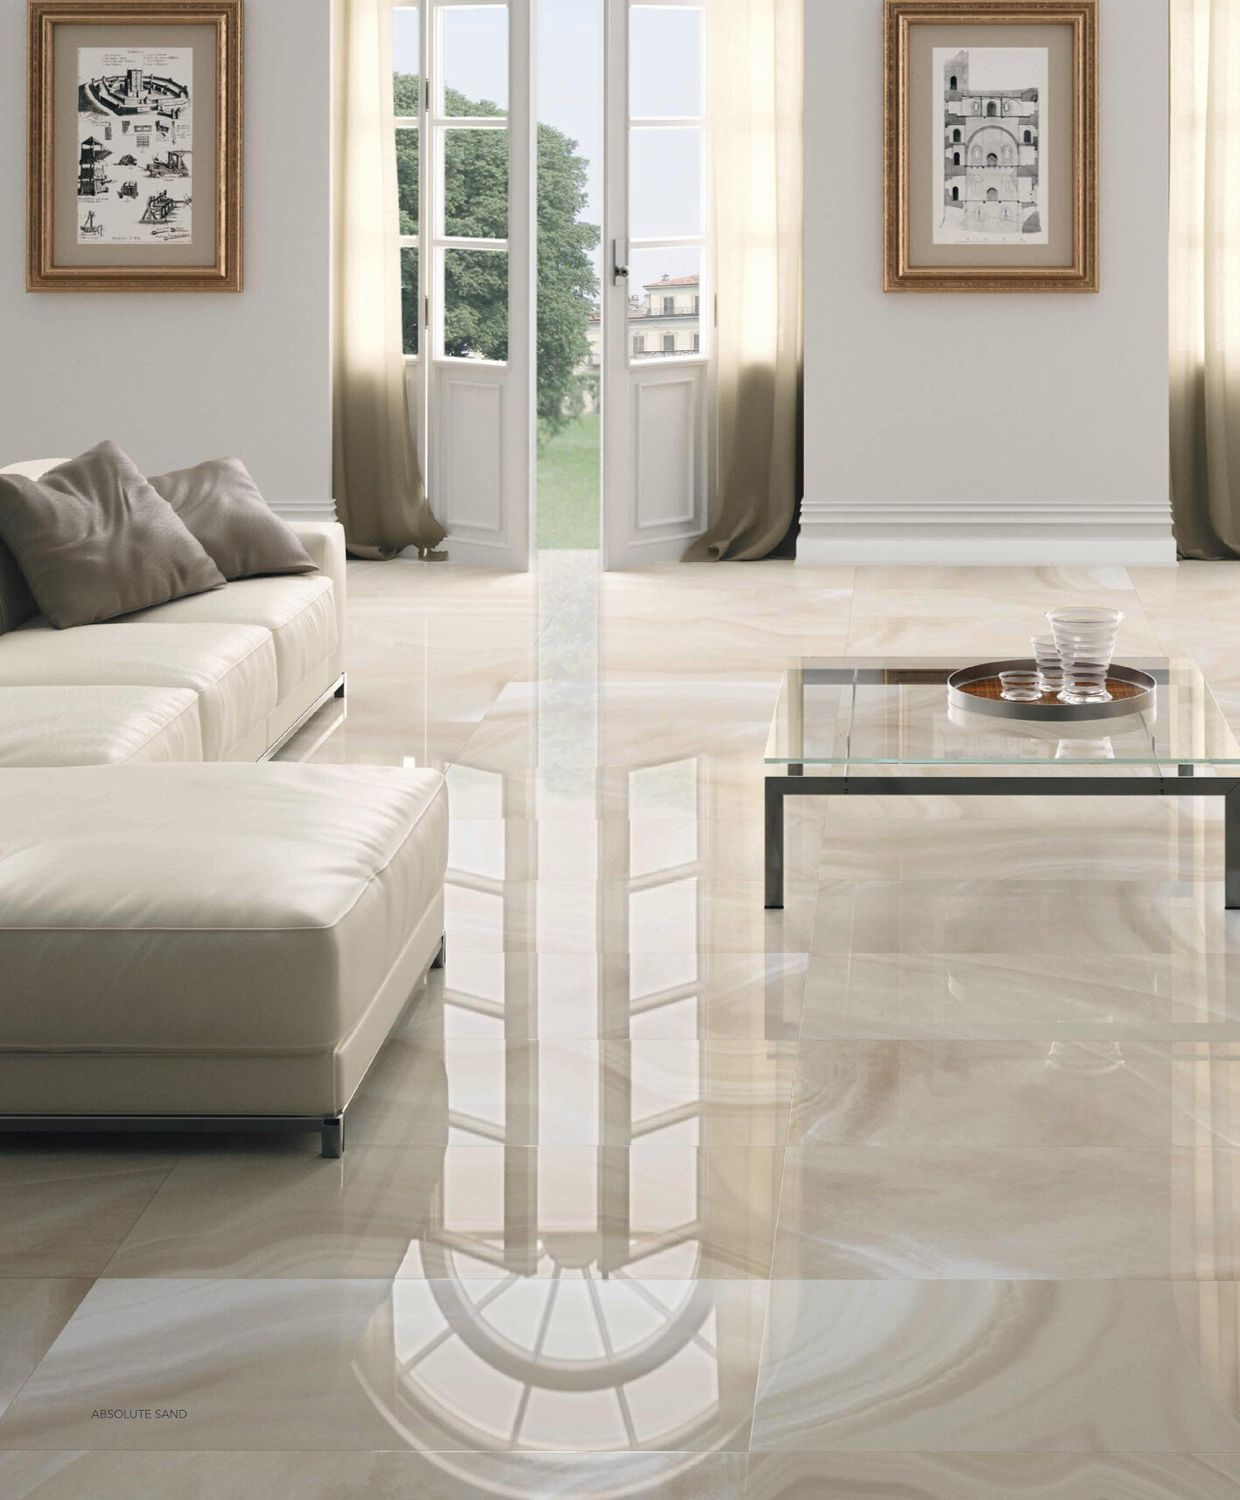 High Gloss Ceramic Floor Tile En 2020 Piso Interiores Pisos